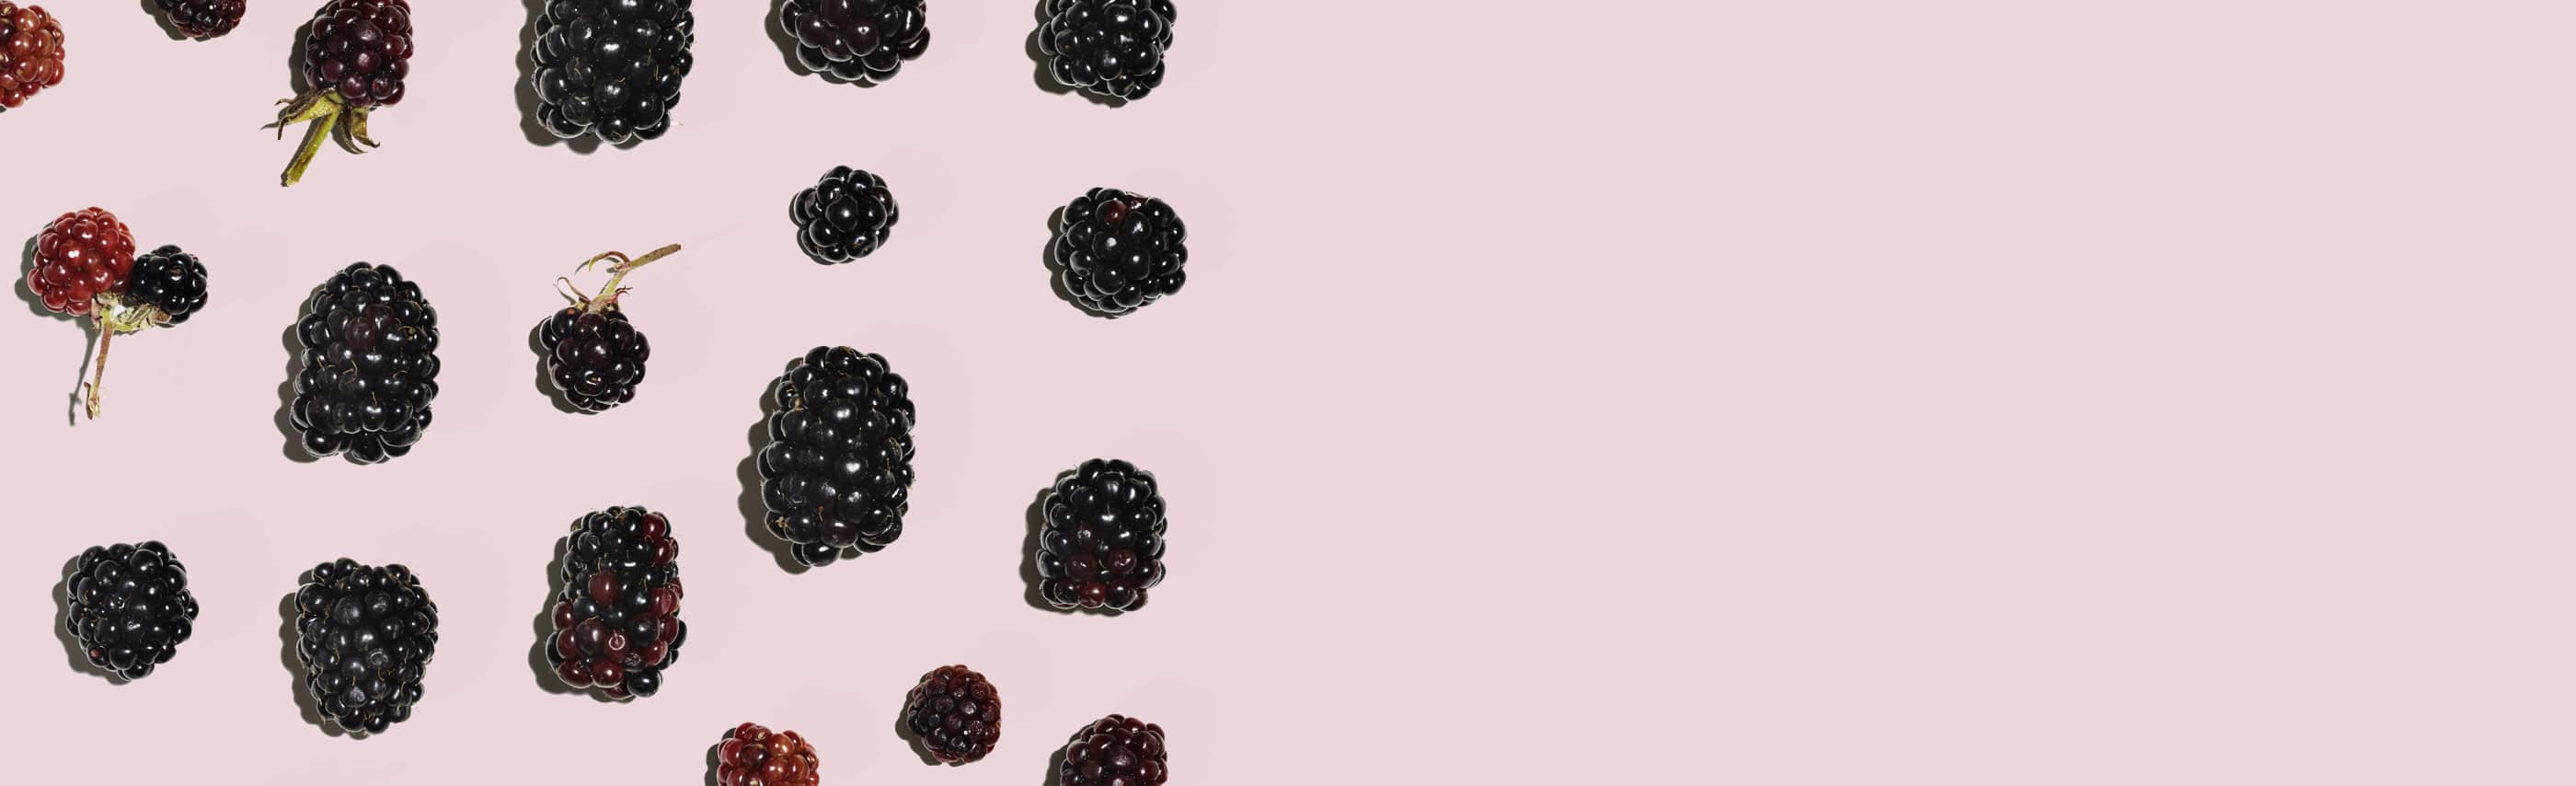 berries grid against a pink background